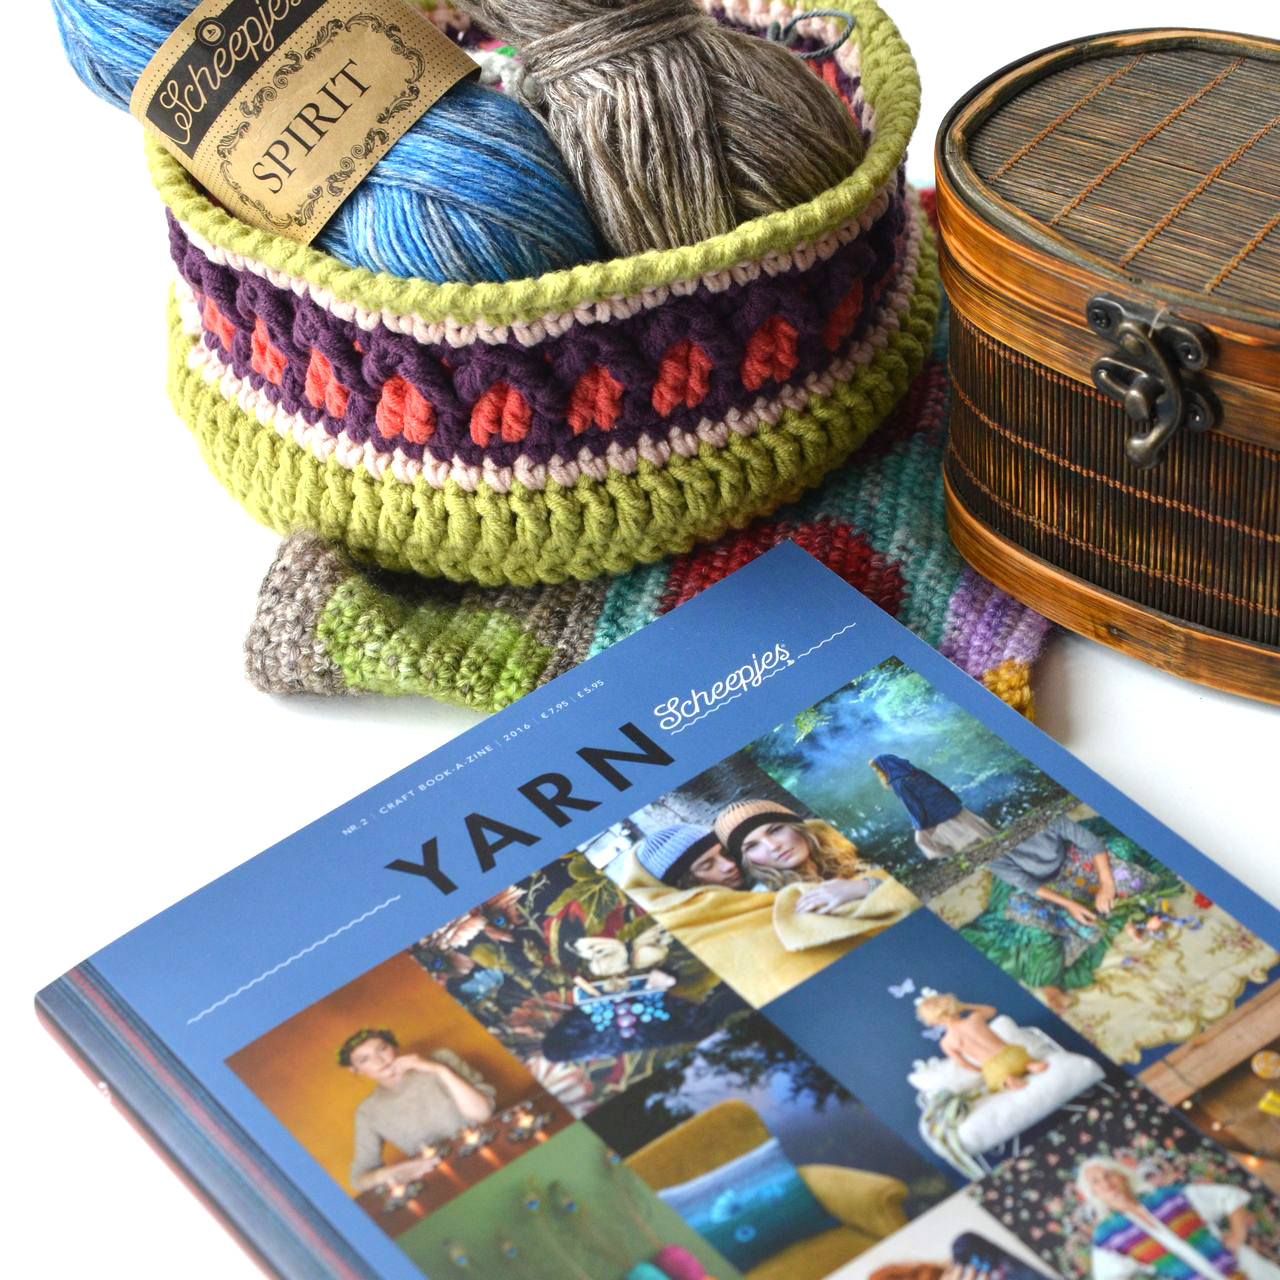 2nd issue of YARN book-a-zine by Scheepjes is full of mystery and festive patterns. Review by Lilla Bjorn crochet